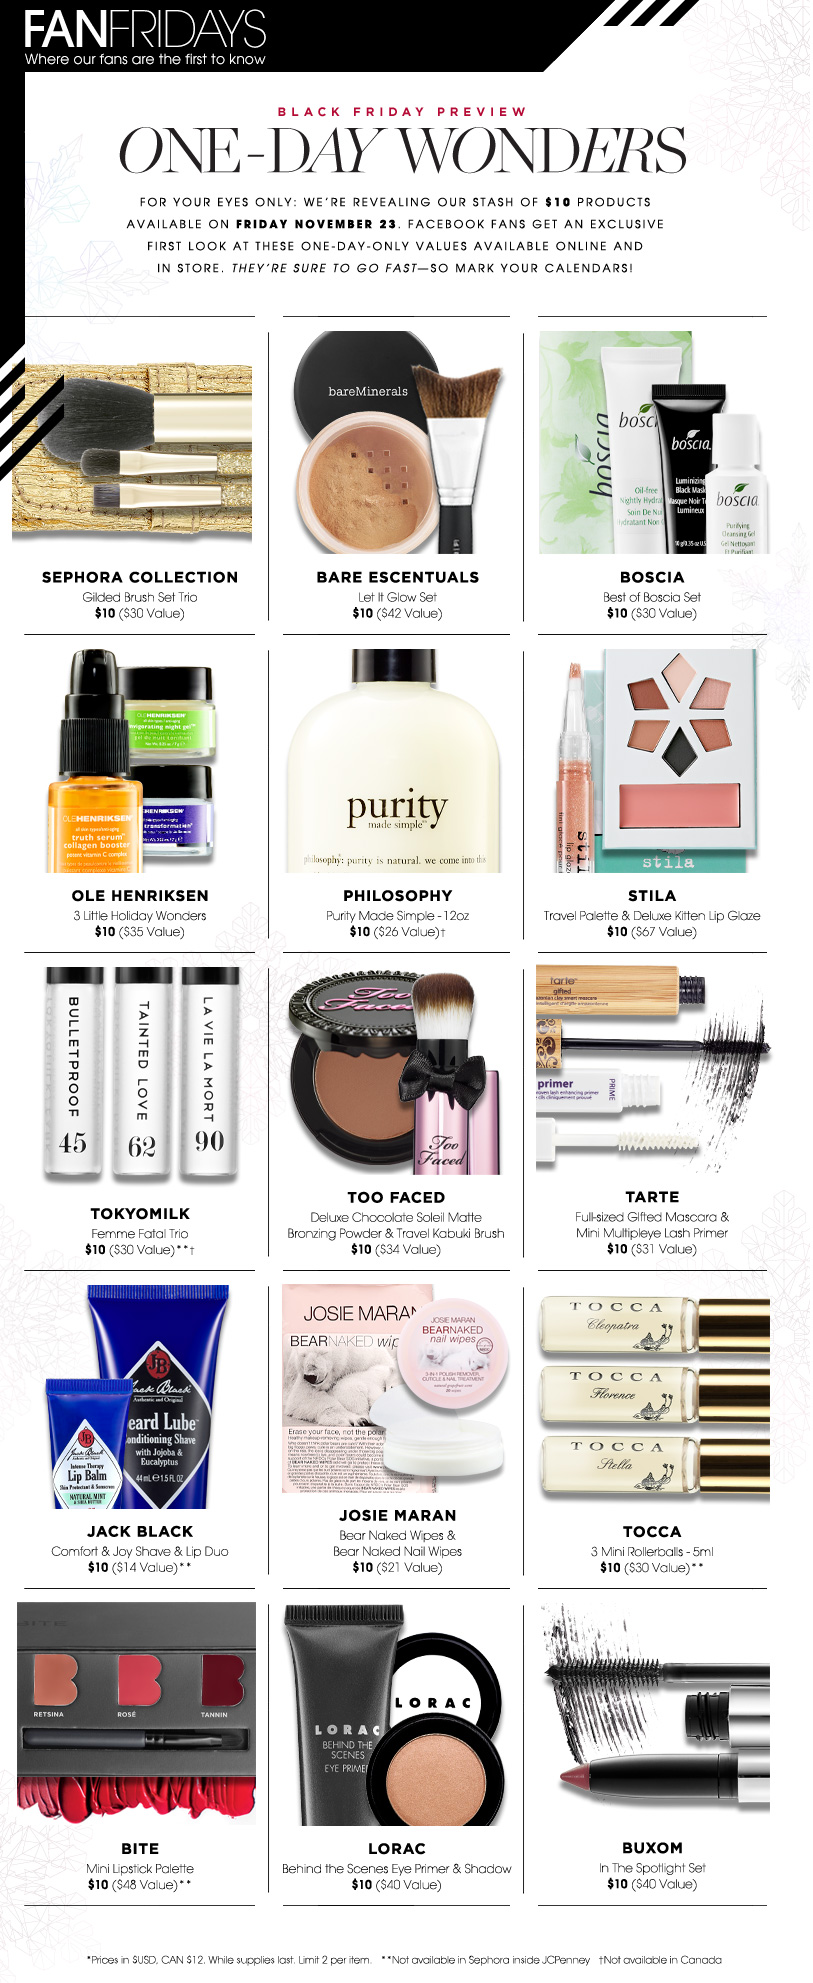 sephora Black Friday, black friday specials, sephora sale, sephora black friday sale, black friday deals, best black friday sale, makeup black friday, black friday gifts, holiday gift guide, gifts for a fashionable girl, makeup gifts, makeup sale